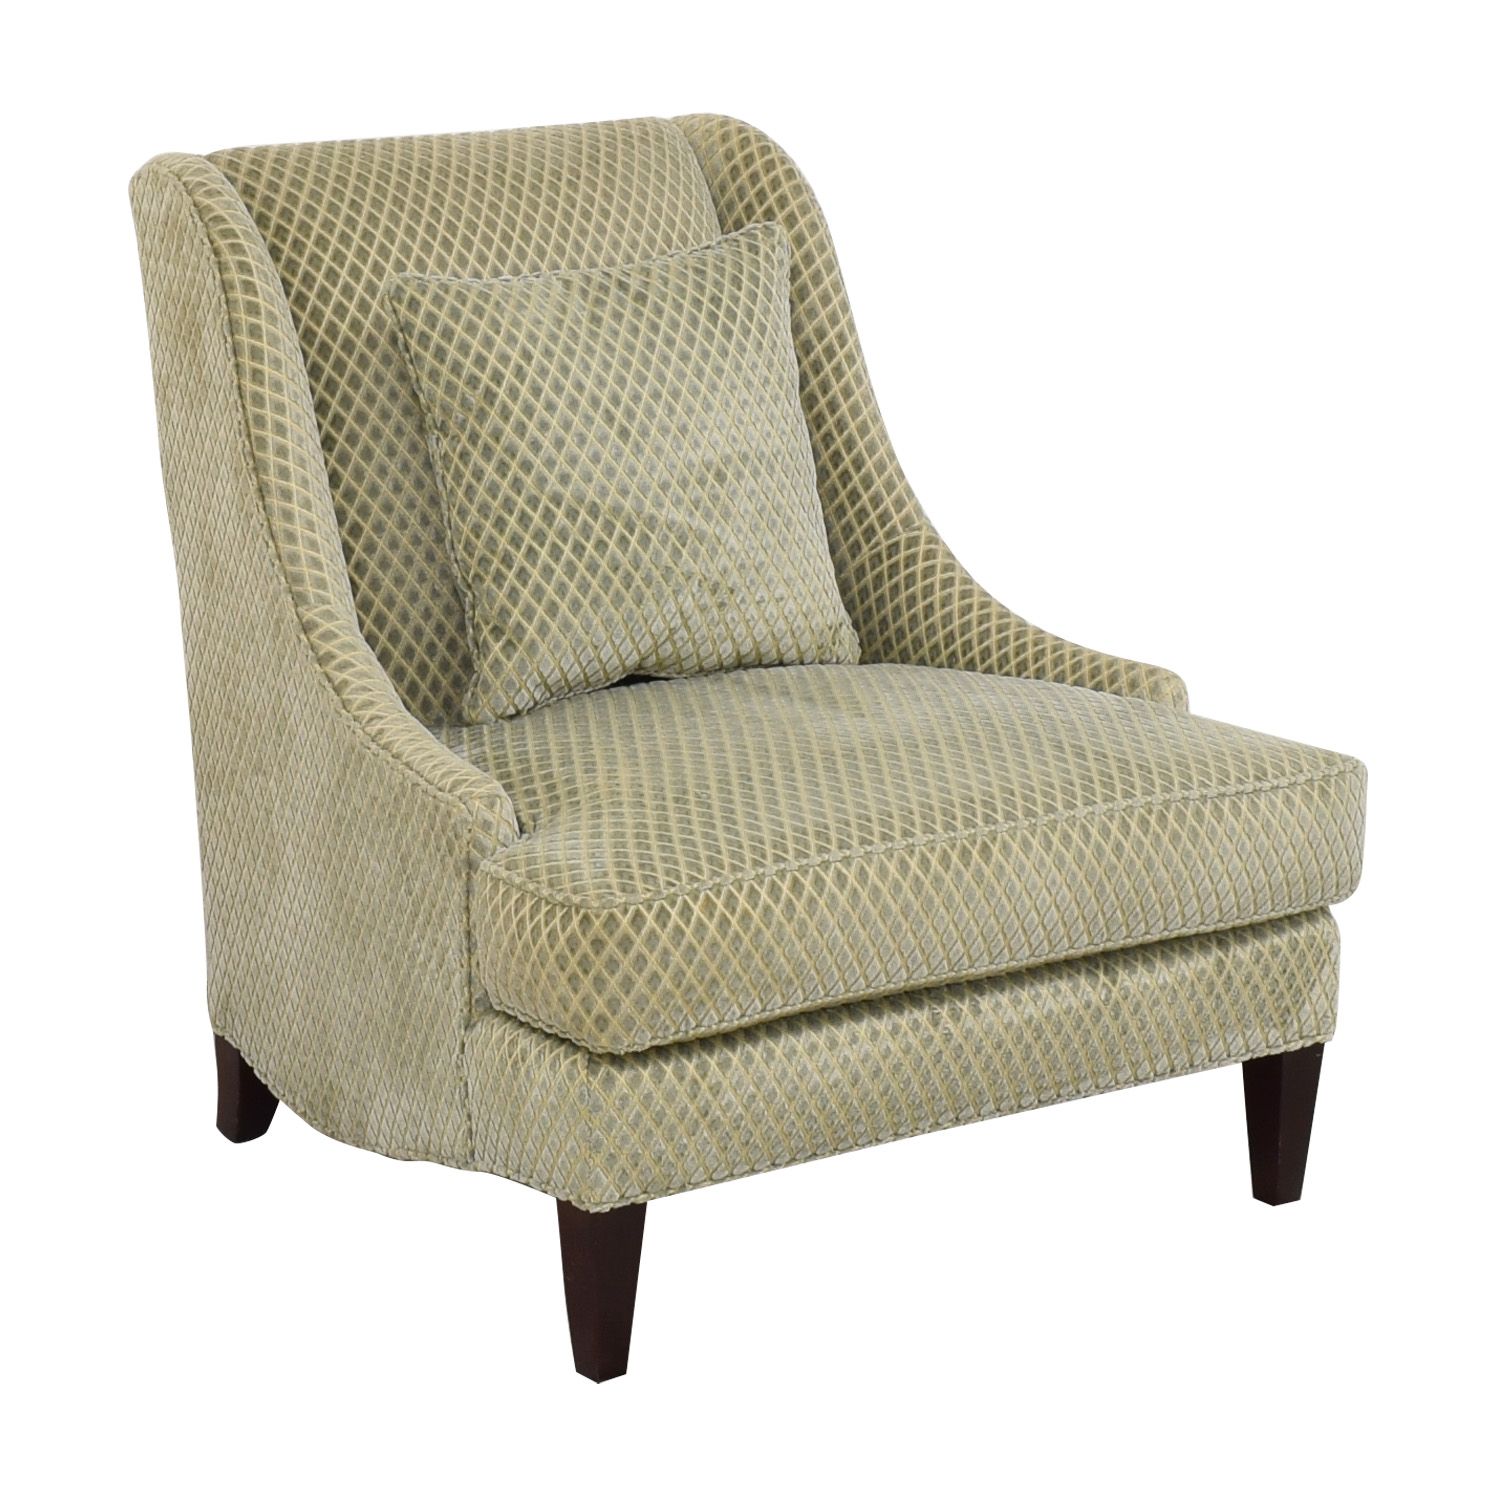 Hickory White Hickory White Armless Chair second hand